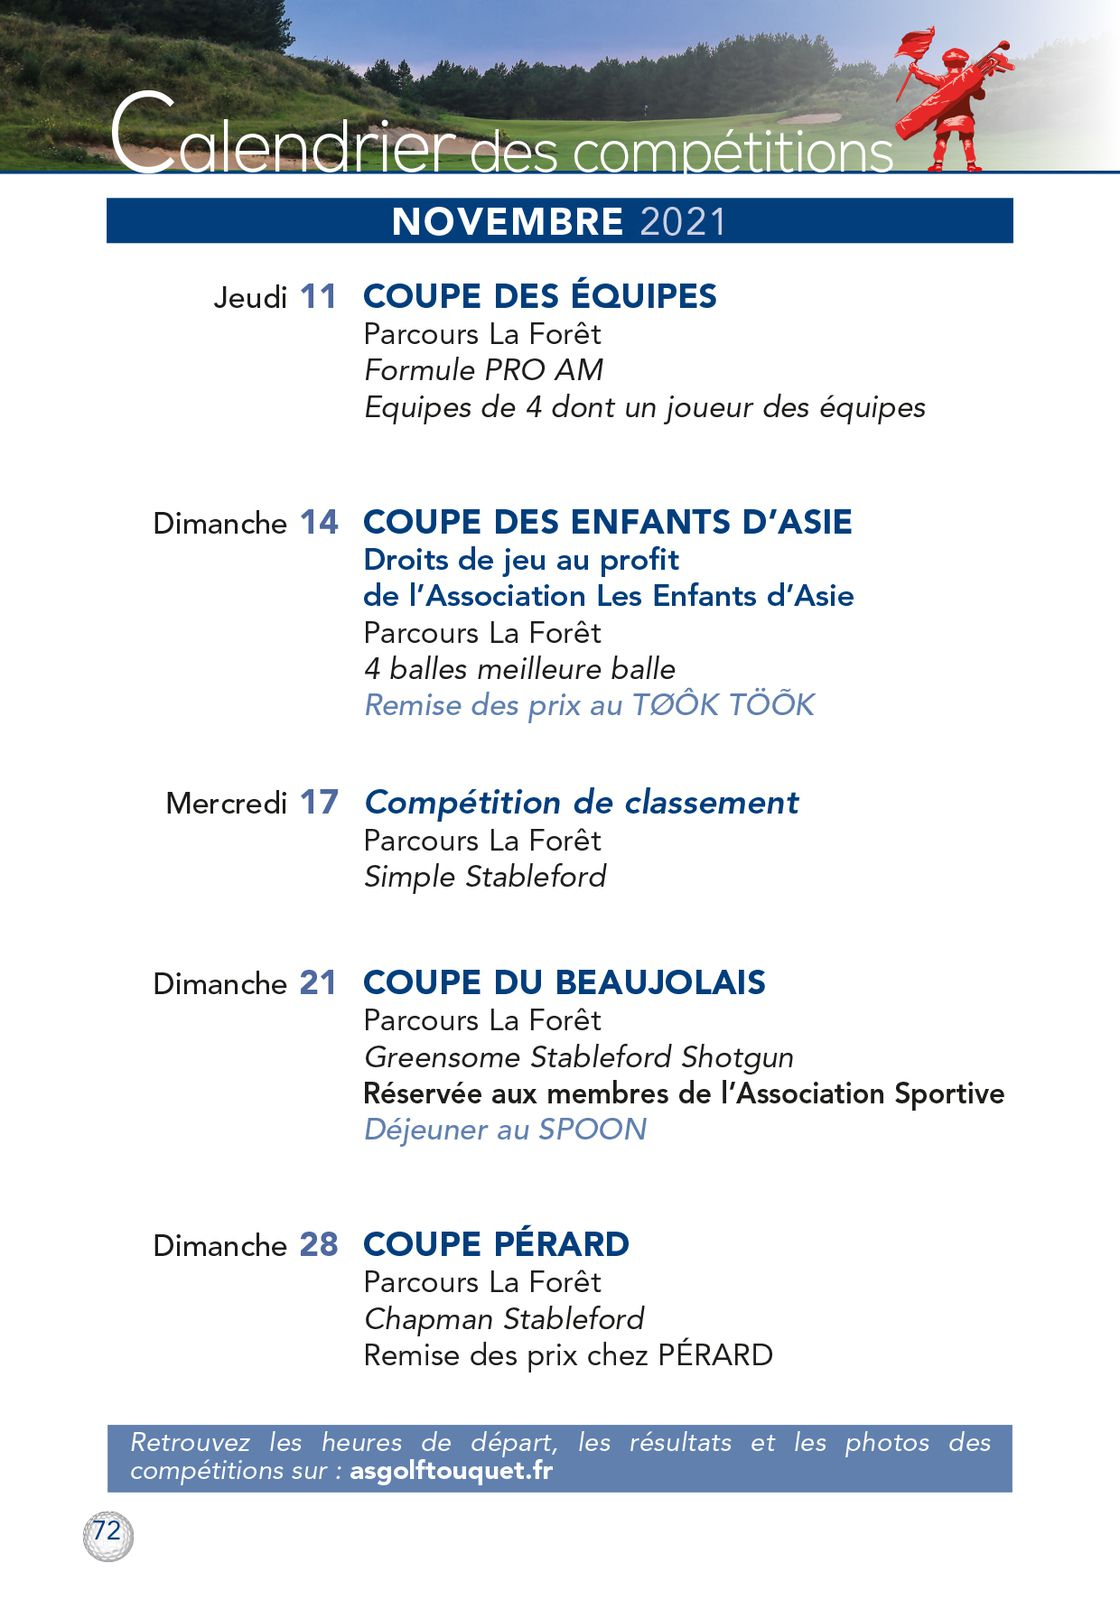 CALENDRIER DES COMPETITIONS